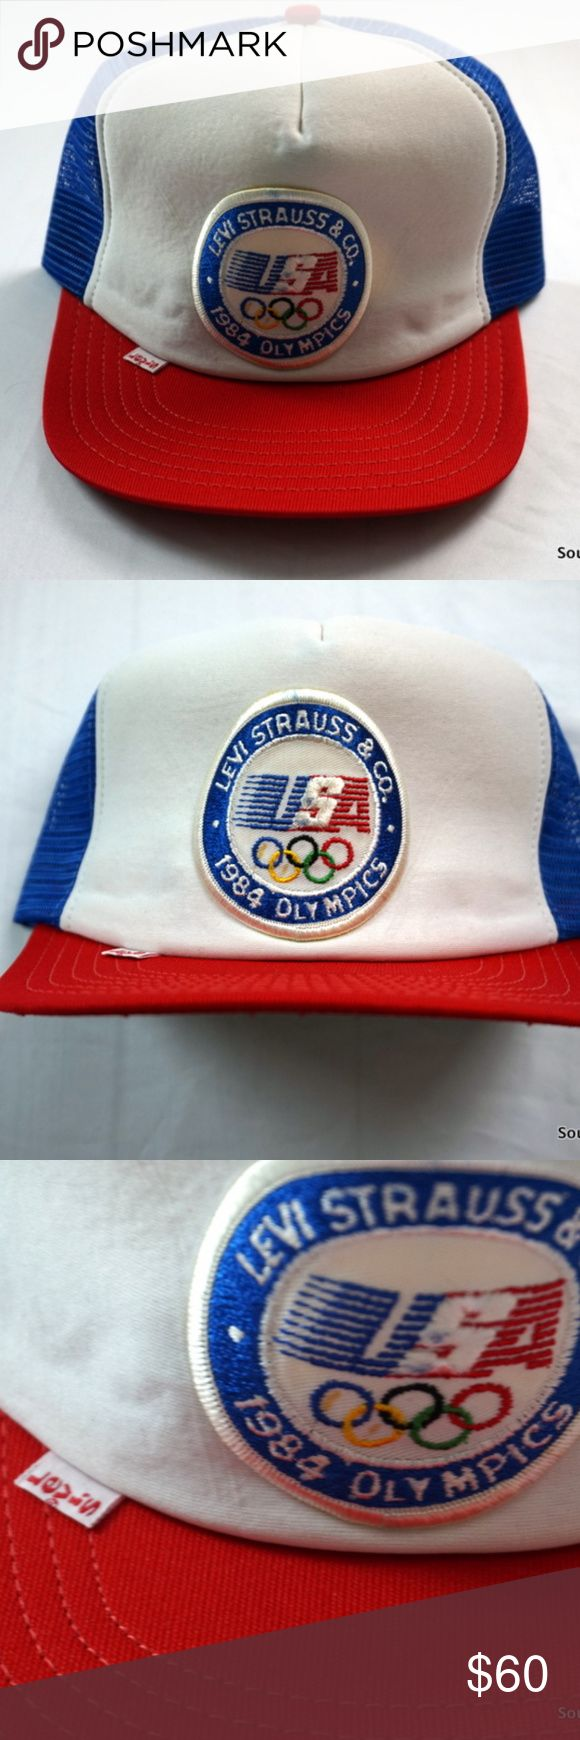 Levi Strauss 1984 Olympics Team USA Snapback Hat Vintage Levi Strauss 1984 Olympics Team USA Hat New Mint Shape Adult OSFA  Rare Hat & In Mint (New) Condition!  Brand: The Winner Size: Adult OSFA  Made in the USA  In Mint Shape, New Without Tags! Ships in 1 business day or less in a cardboard hat sized box from a clean smoke free environment. Thanks! Levi's Accessories Hats